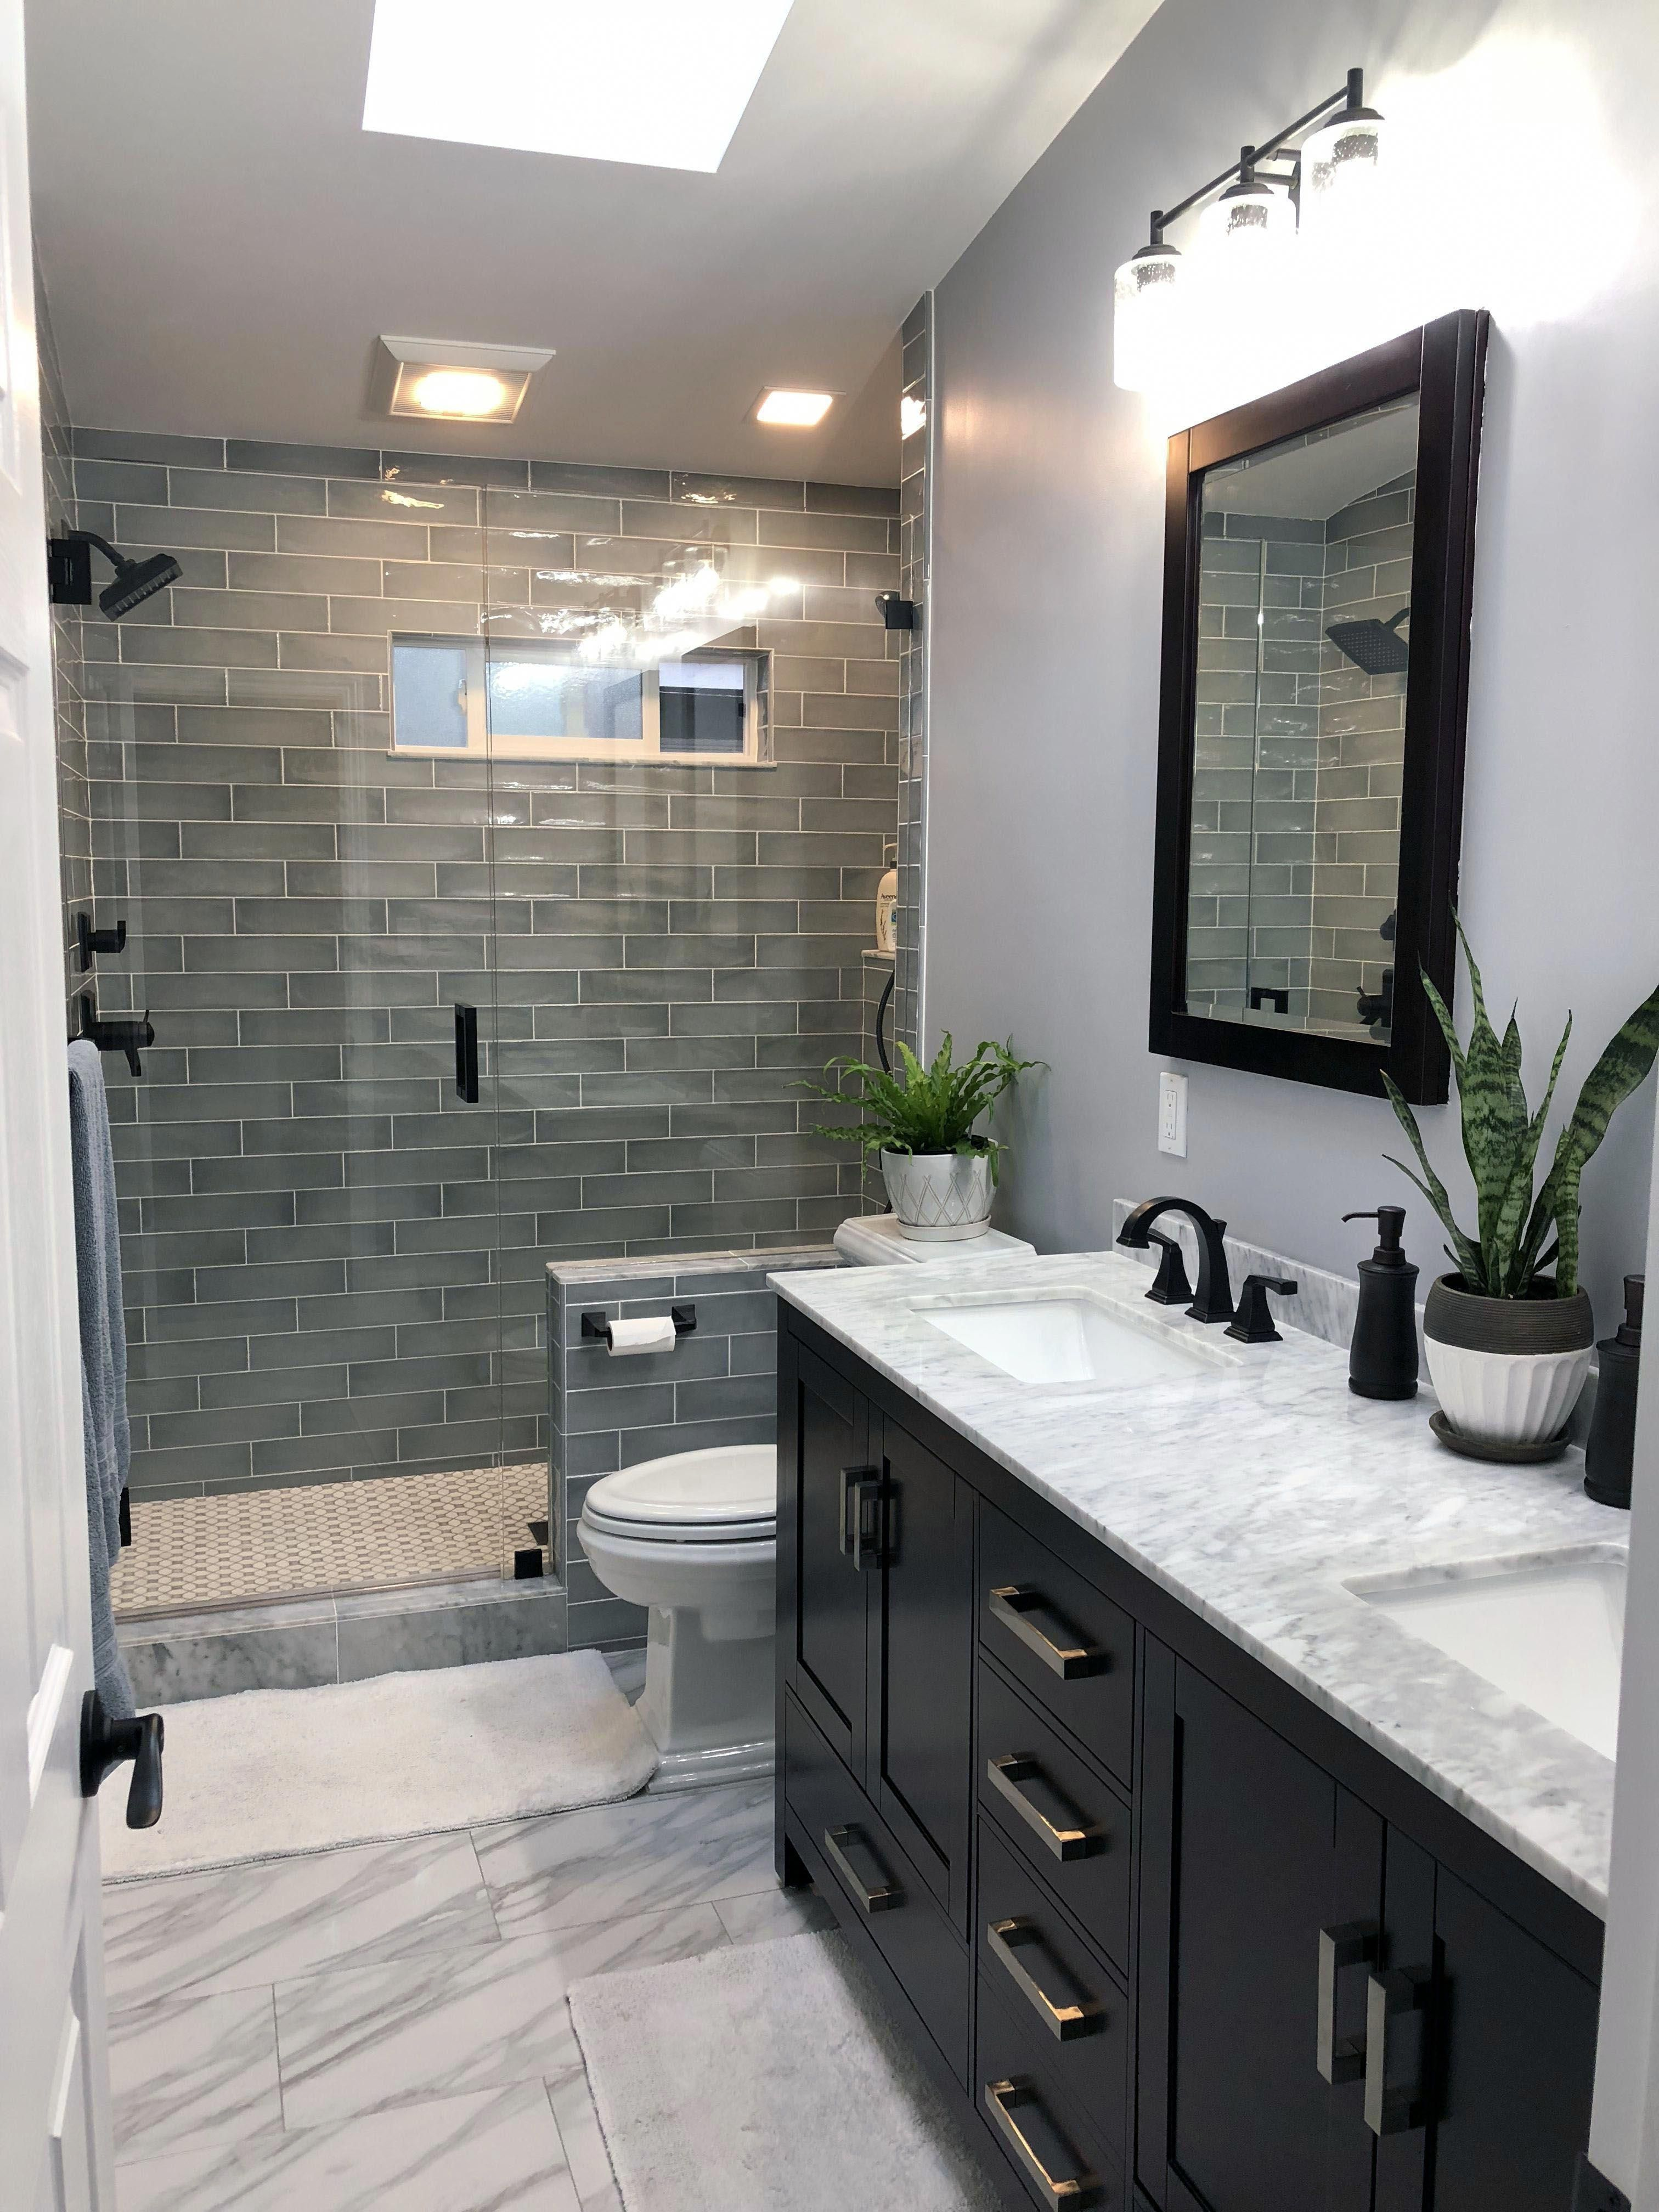 discreet arbitrated bathroom decorations get 50 off now on best bathroom renovation ideas get your dream bathroom id=55774